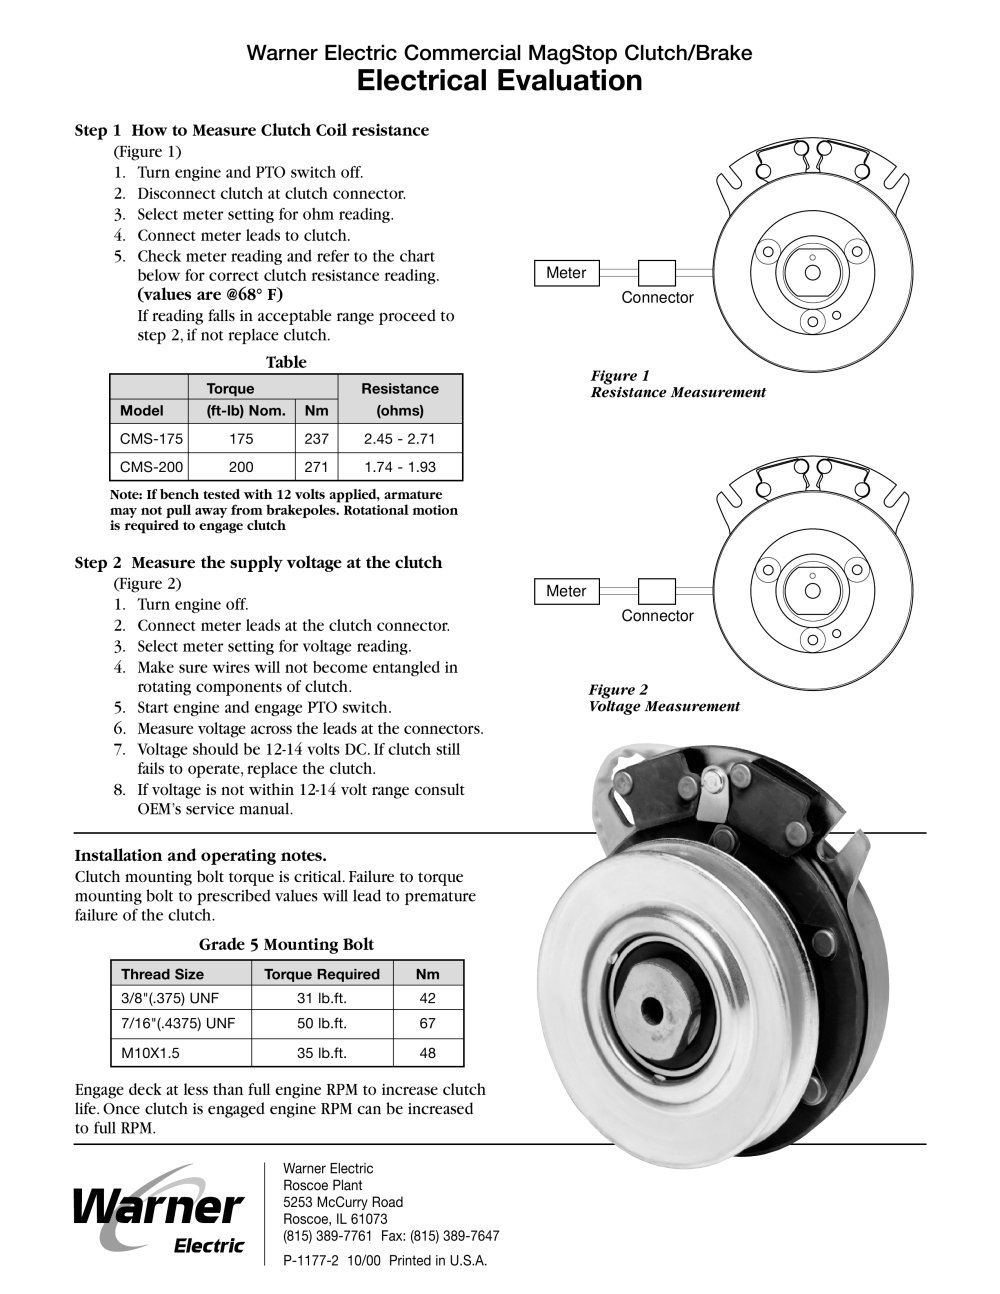 medium resolution of magstop clutch brake 1 2 pages